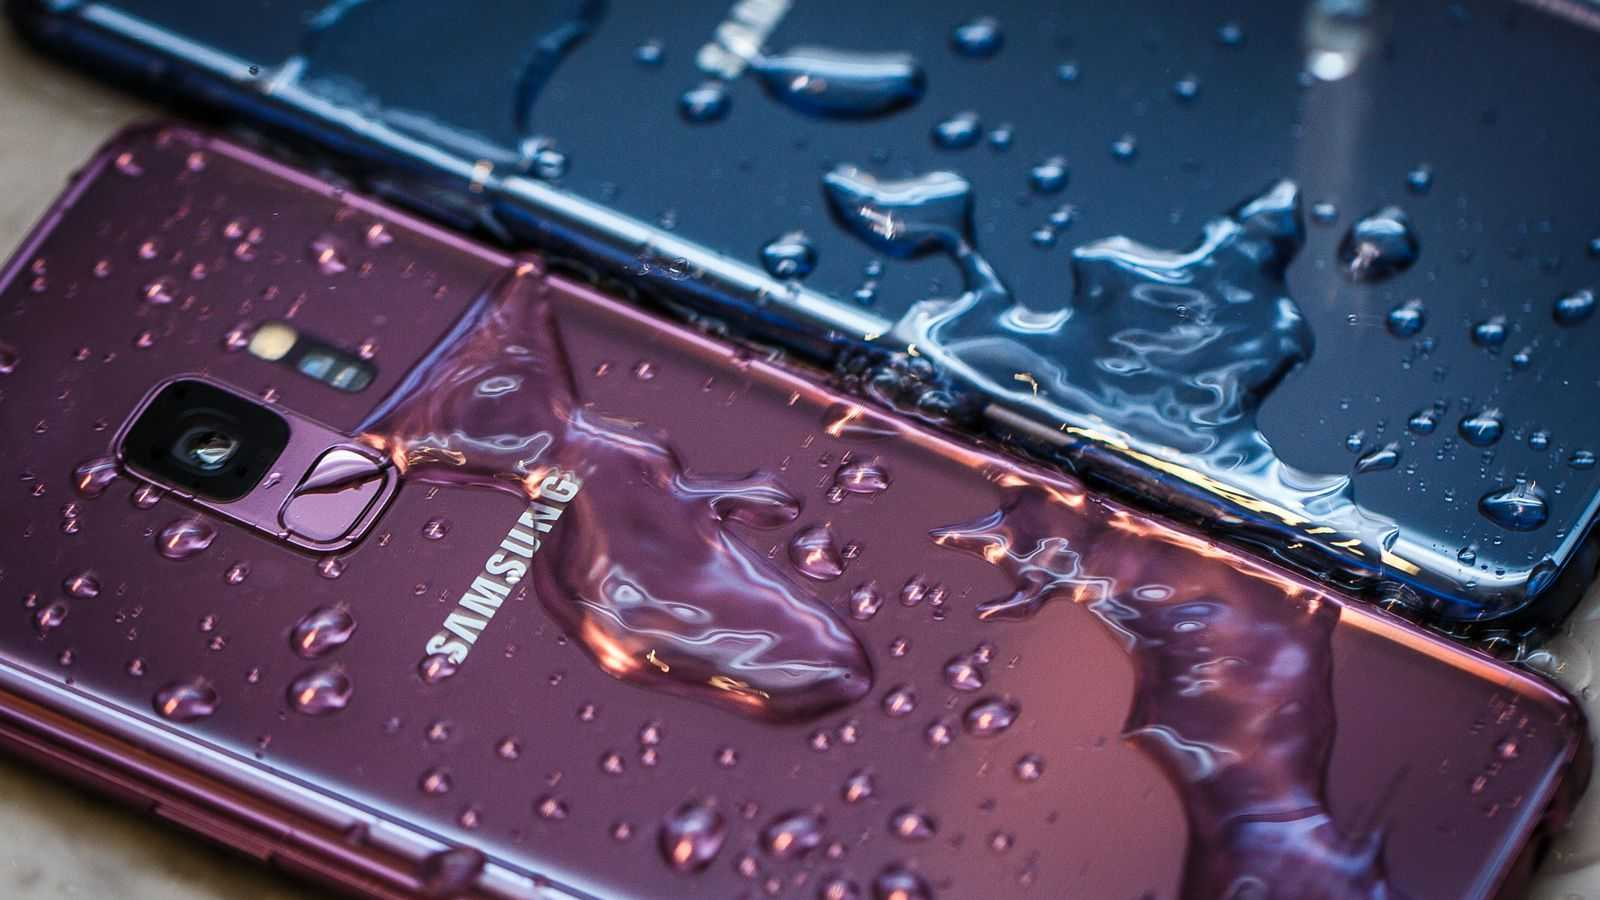 The TOP 3 phones that are not afraid of water